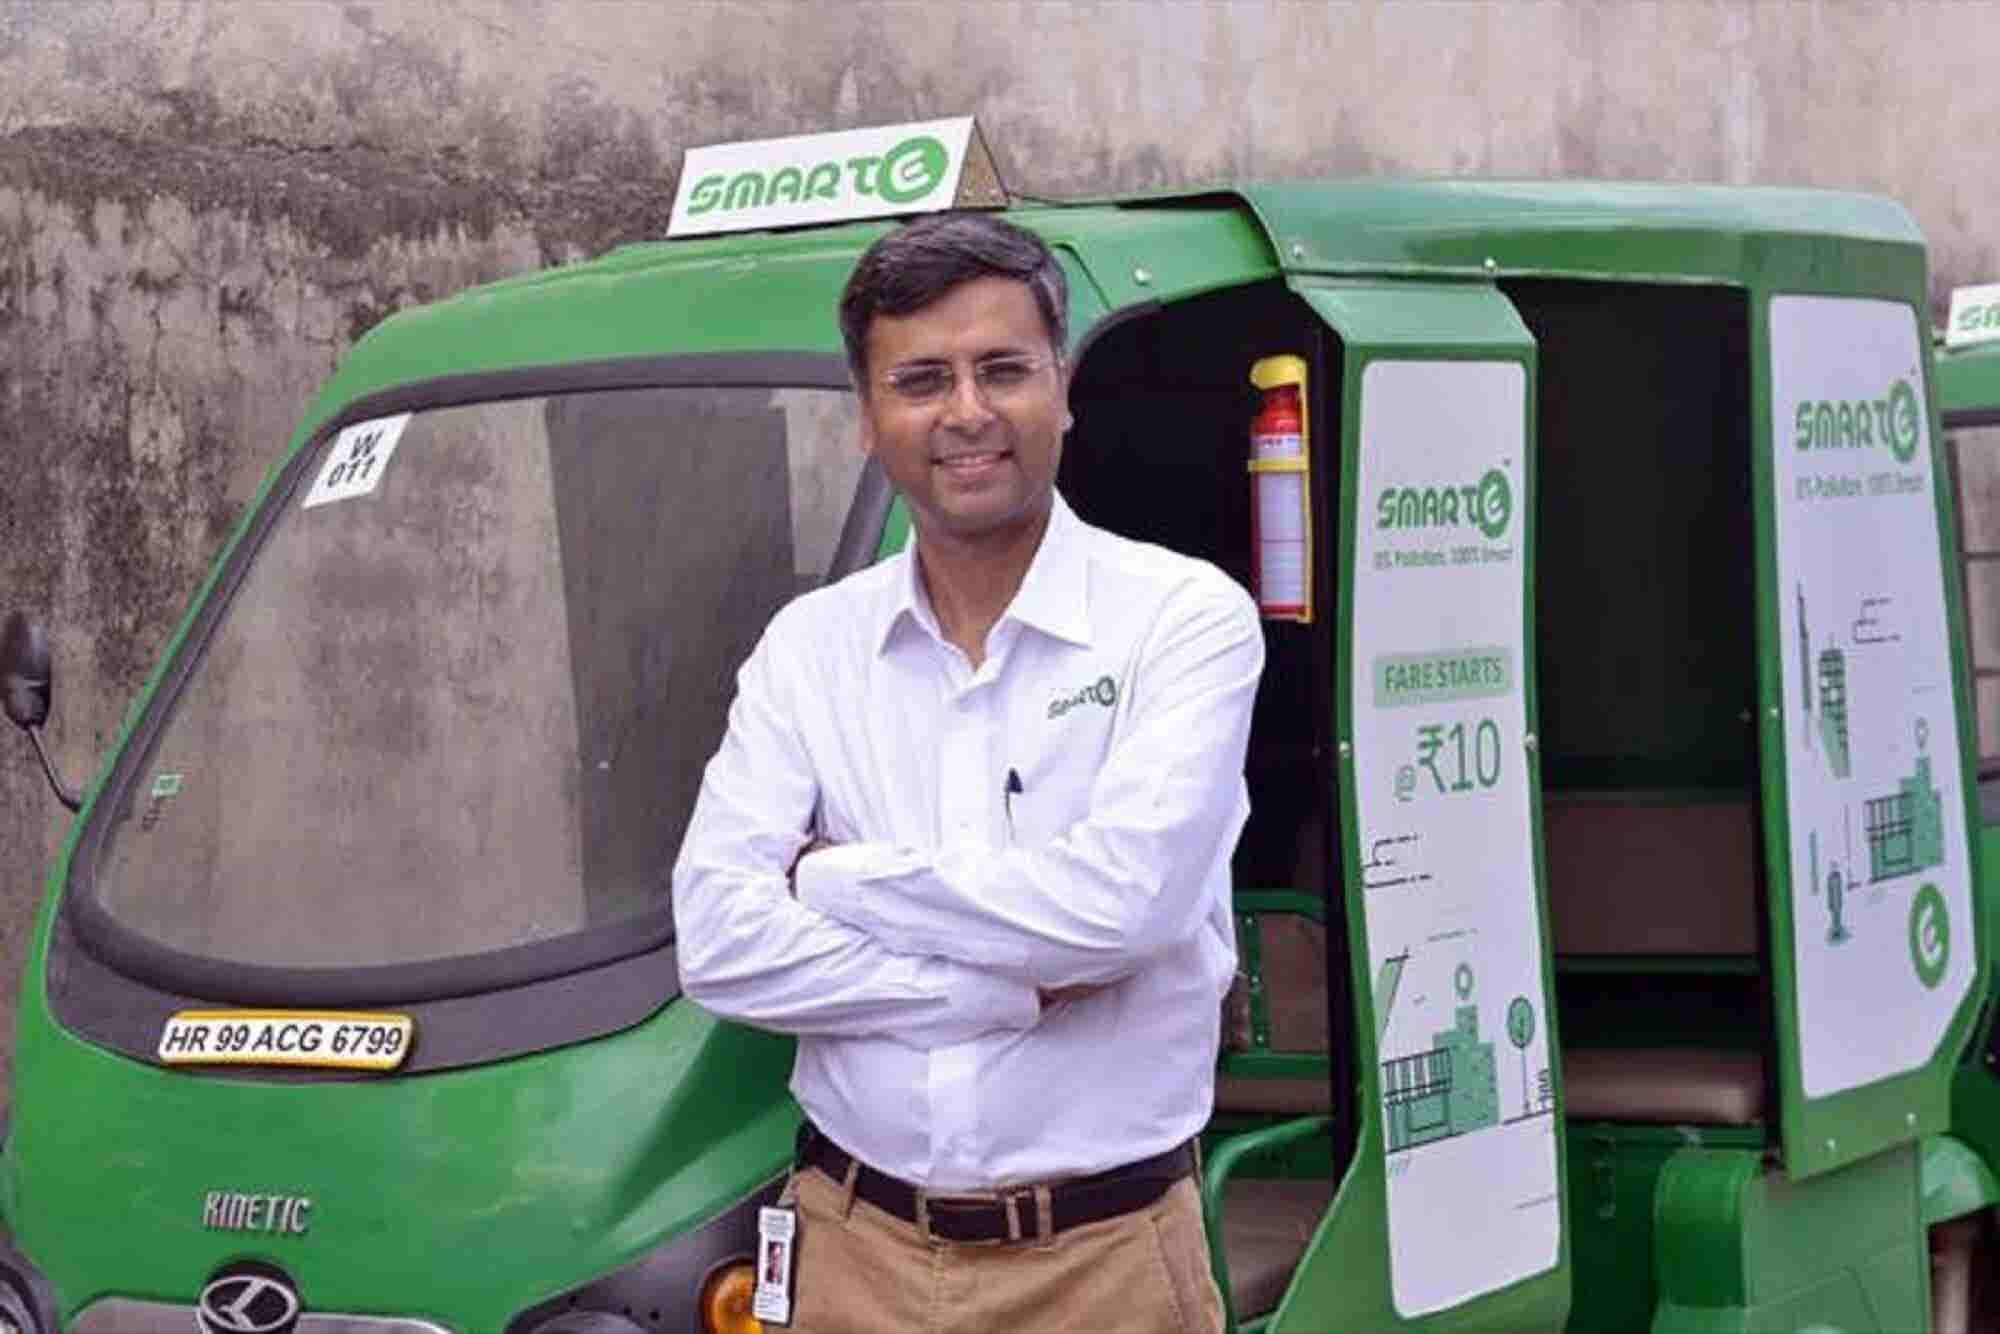 This Entrepreneur is Improving Last-mile Connectivity With a Smart Idea